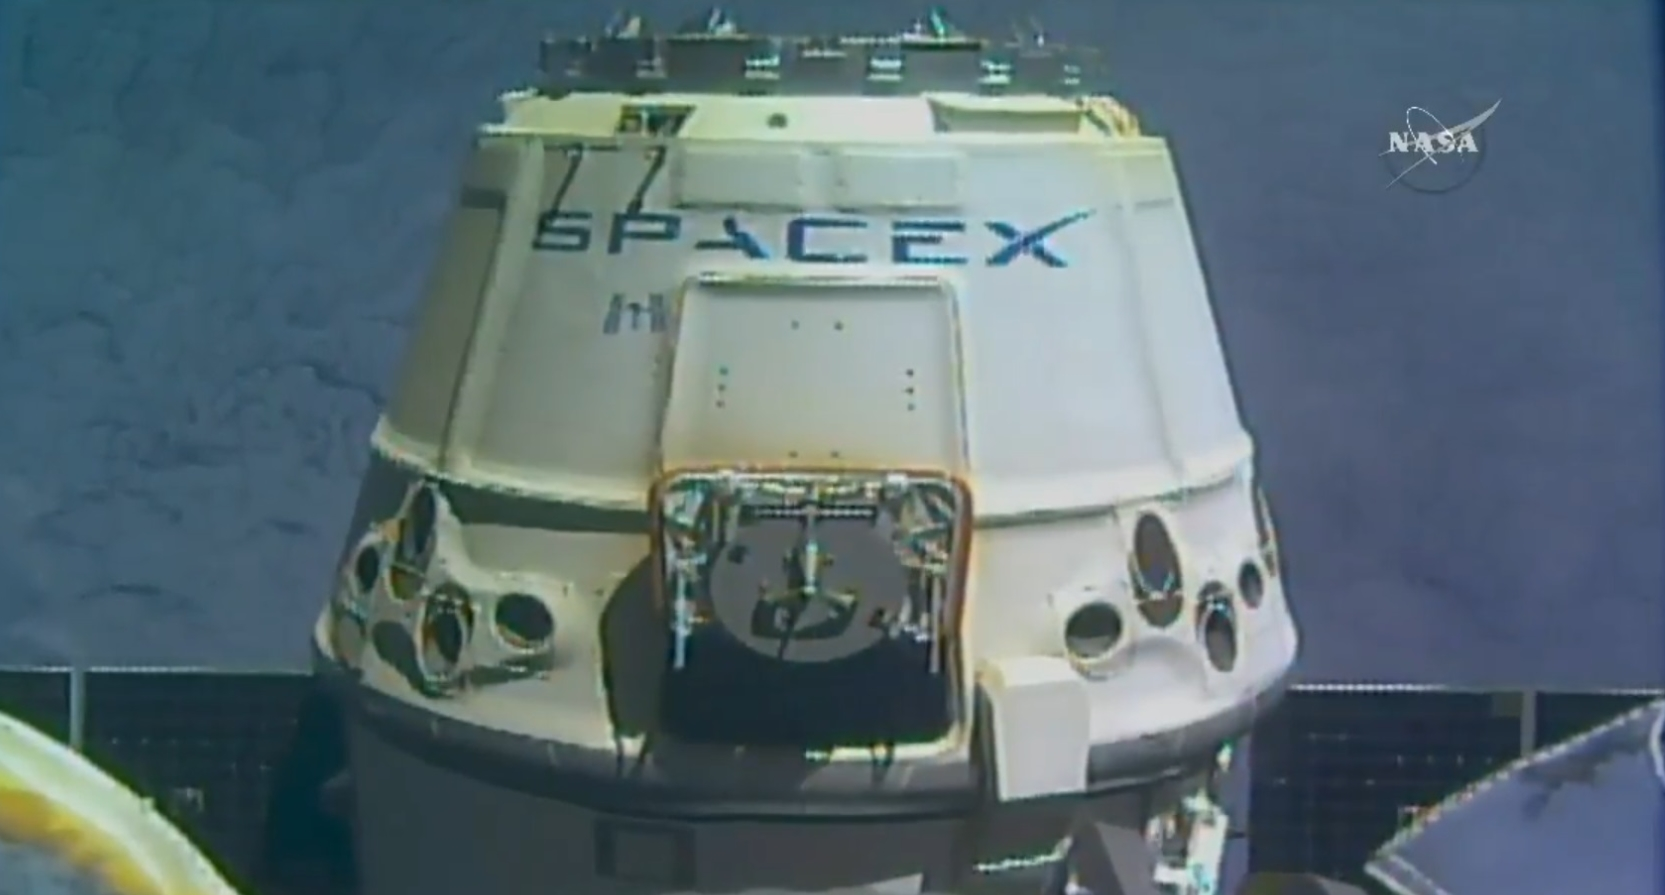 Dragon Splashes Down in Pacific With NASA Research and Cargo